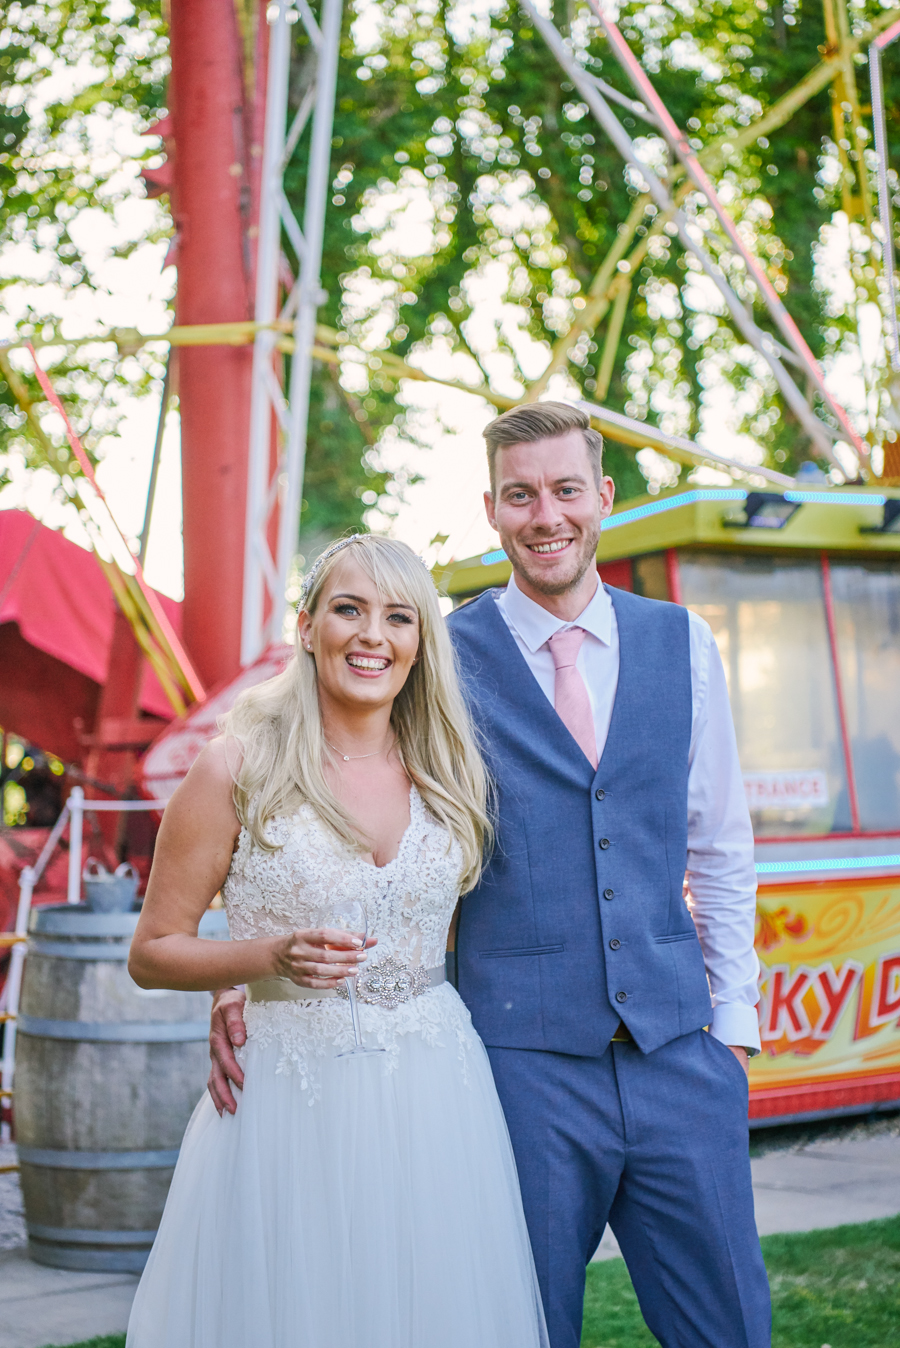 Penny and Ben's funfair wedding at Marleybrook with Rose Images (41)